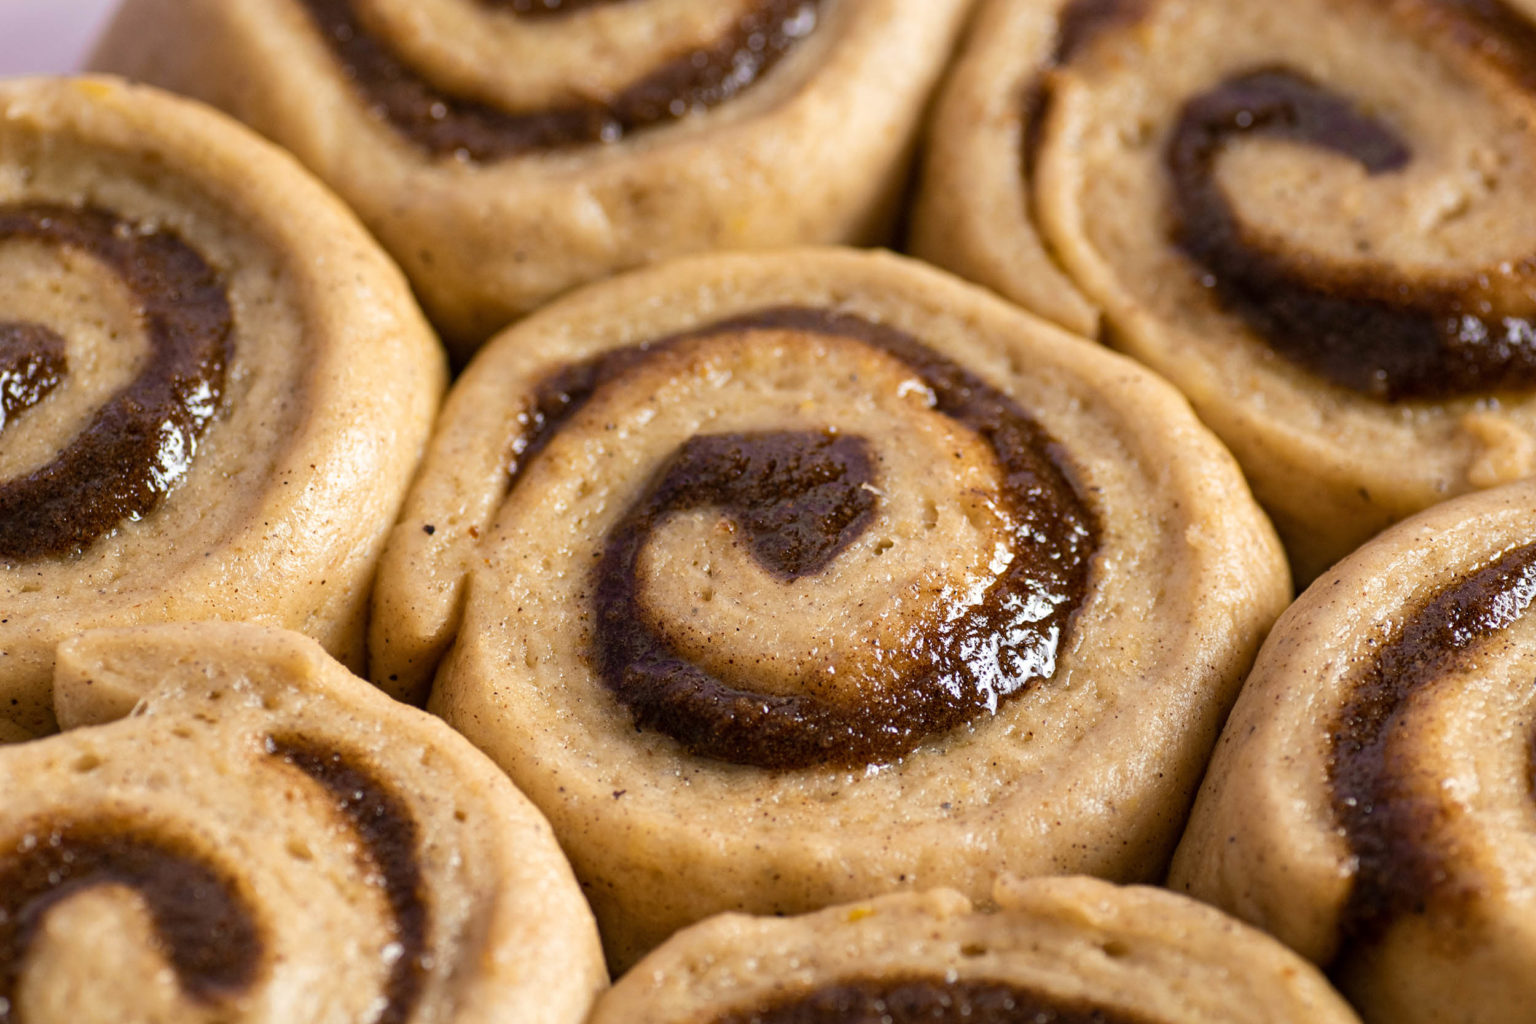 Close-up of Uncooked cinnamon rolls in tray